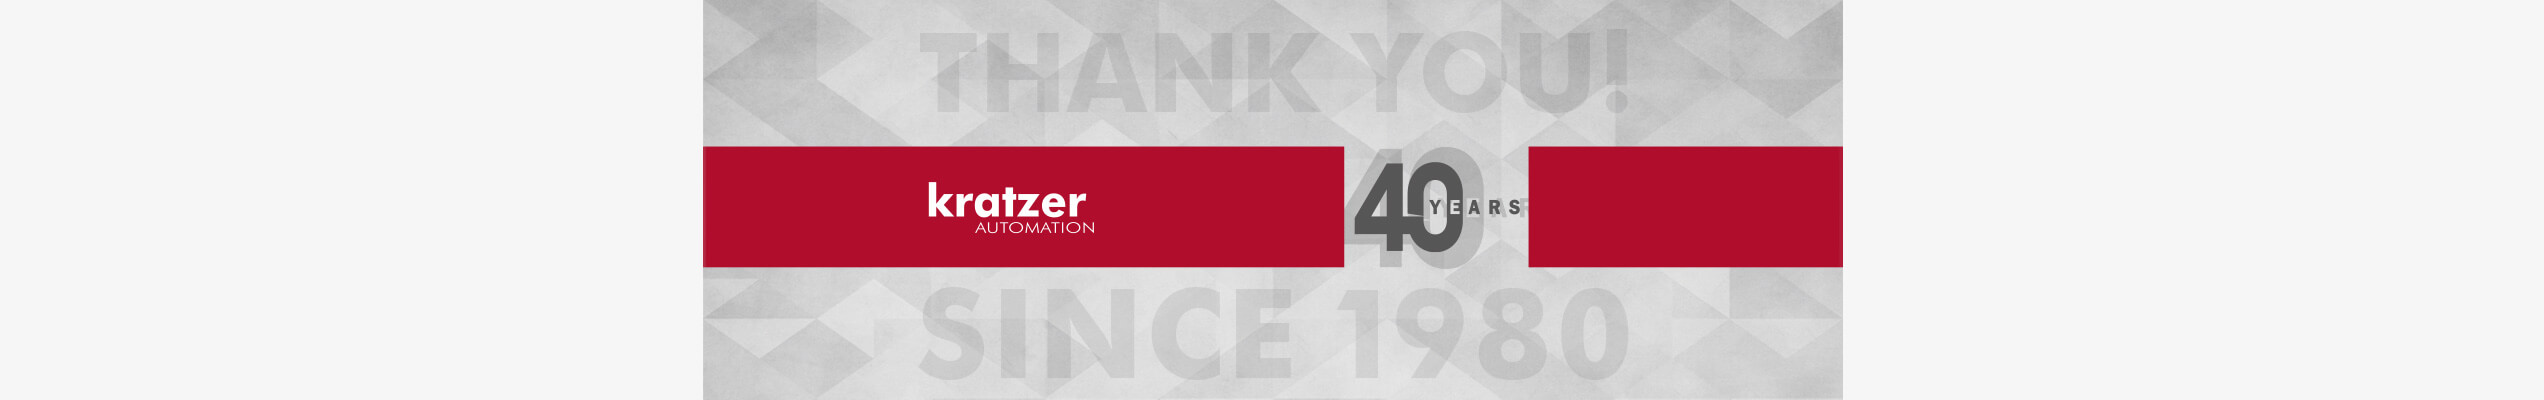 40 Years of KRATZER AUTOMATION